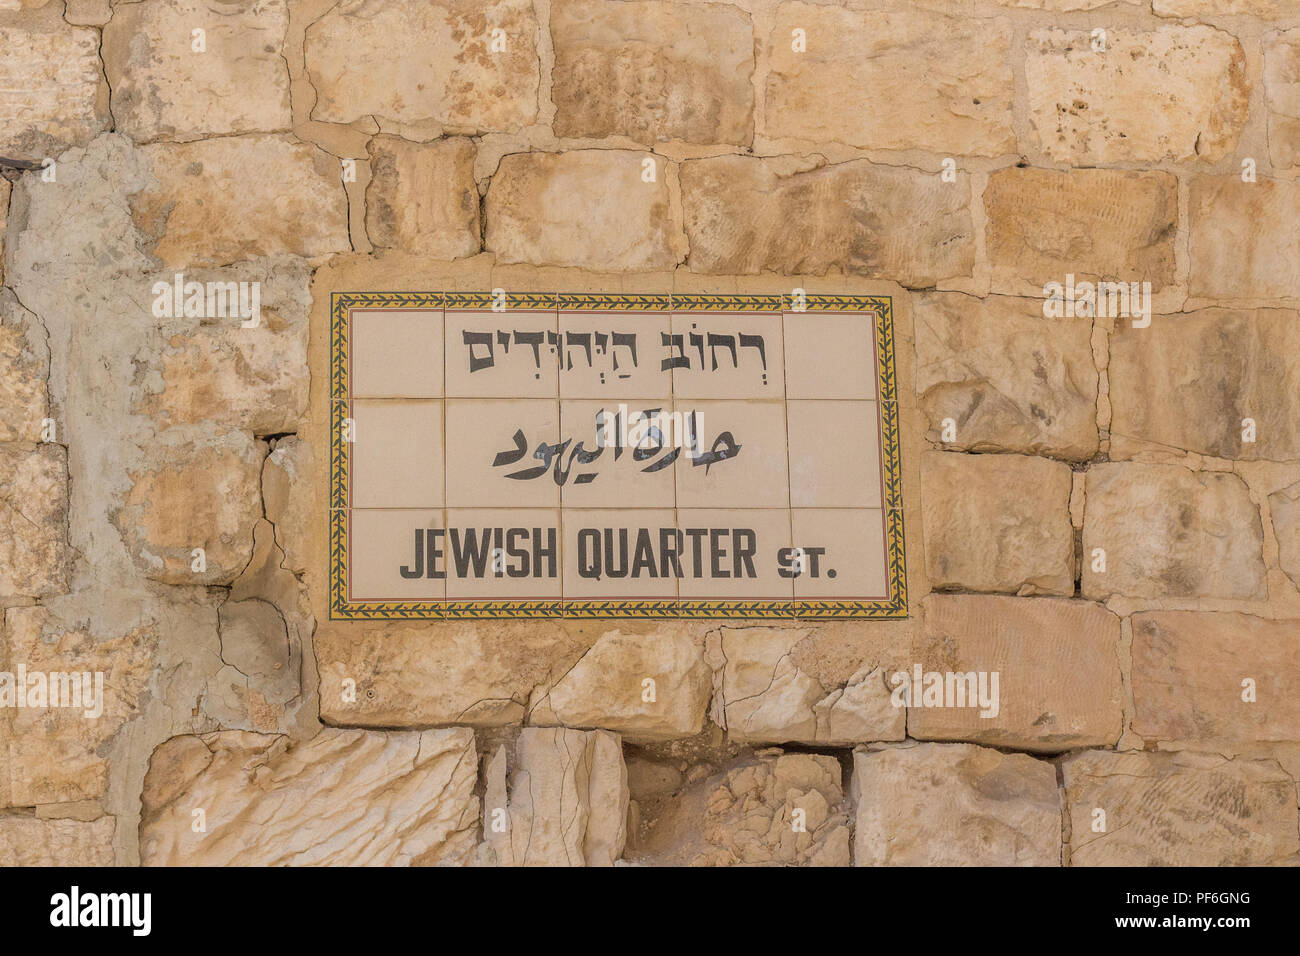 A sign made of tiles depicting the 'Jewish Quarter' street, in the old city of Jerusalem, Israel, Middle East - Stock Image